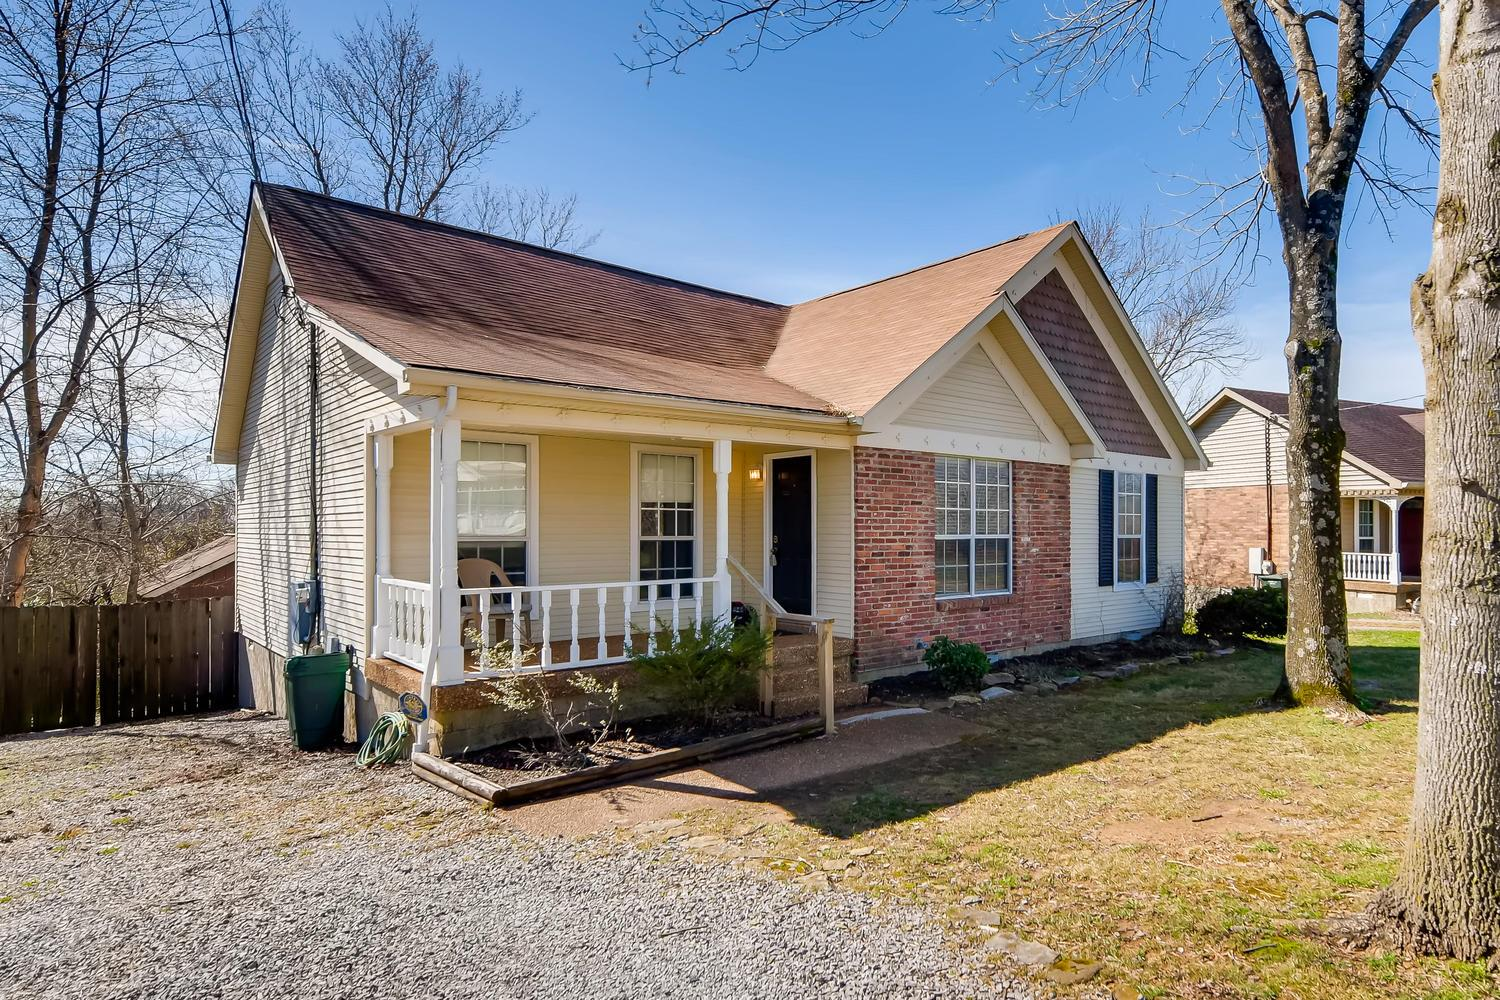 1408 Autumn Knl 37076 - One of Hermitage Homes for Sale